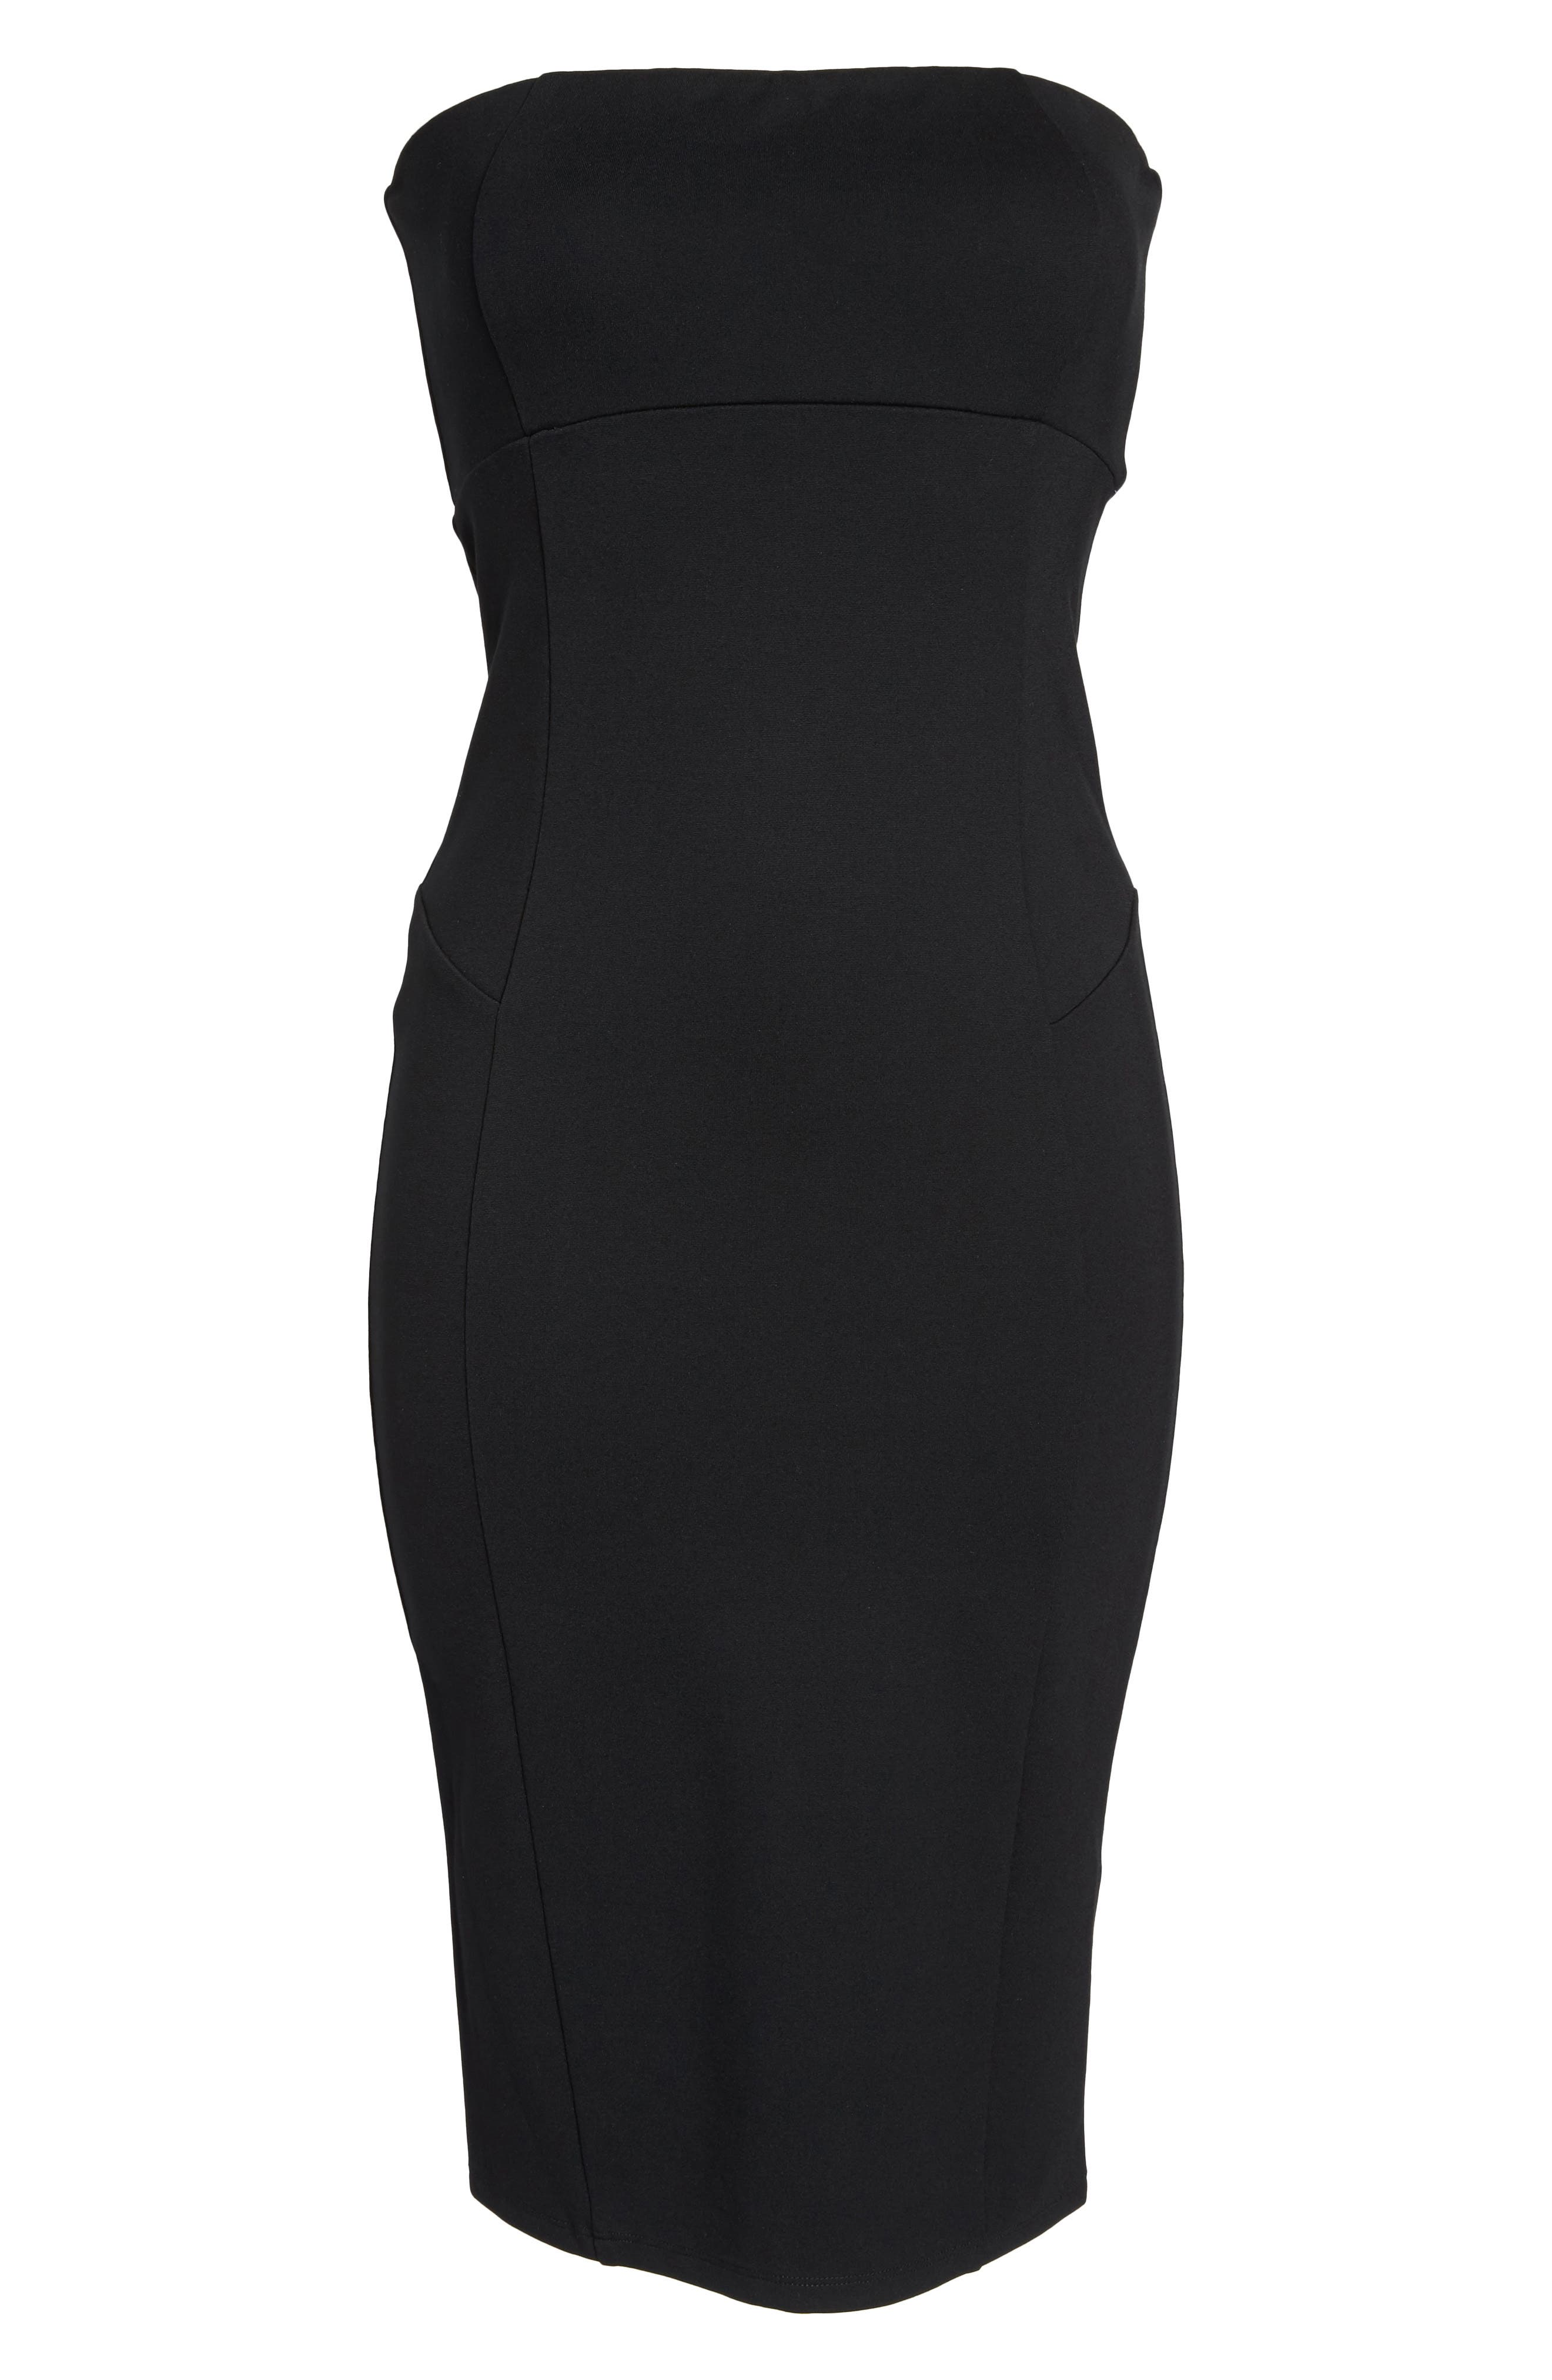 Brianna Strapless Knit Body-Con Dress,                             Alternate thumbnail 7, color,                             001